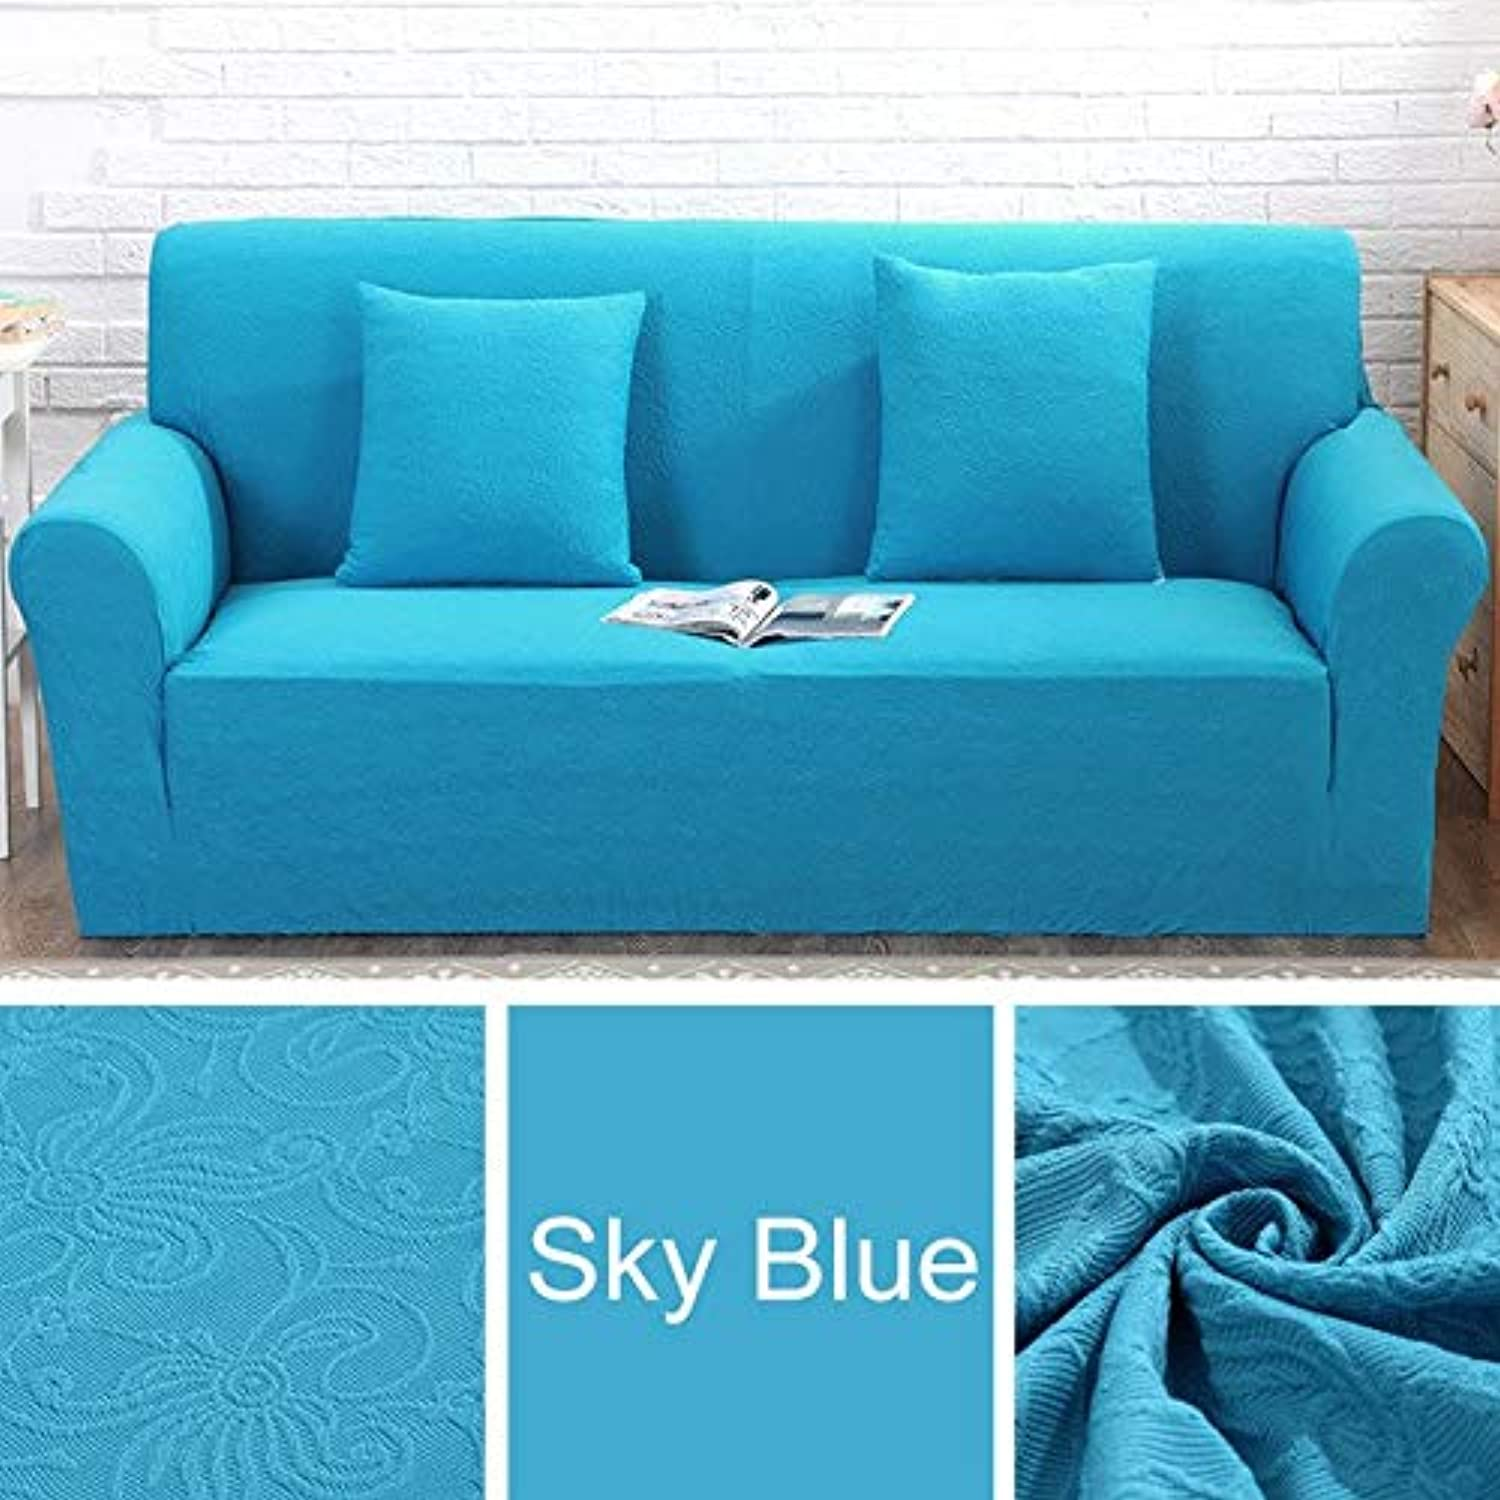 Jacquard Embroidery Fabric Sofa Cover Tight wrap All-Inclusive sectional Elastic seat Covers Couch Covering Slipcovers   Sky bluee, 4 seat 230-300cm